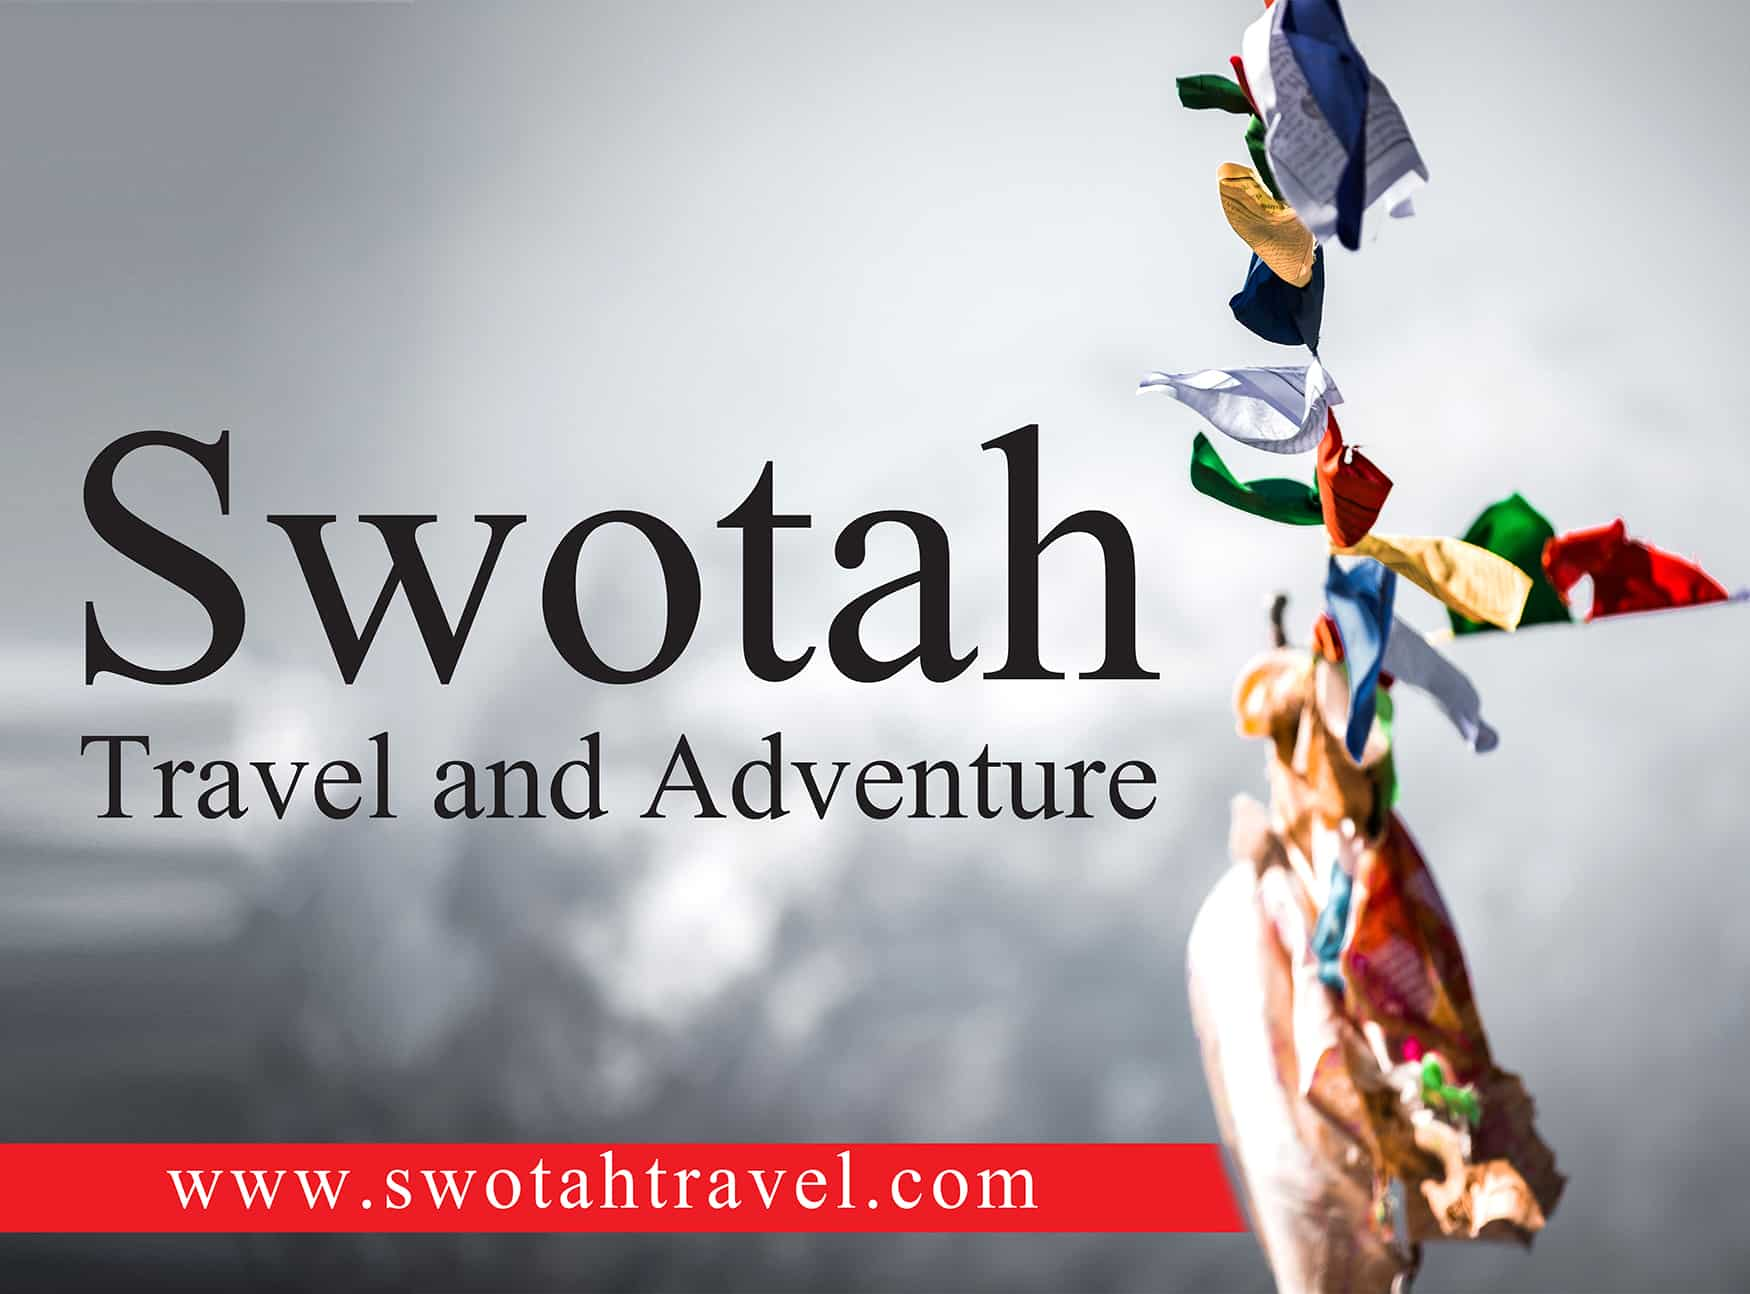 Swotah Travel and Adventure